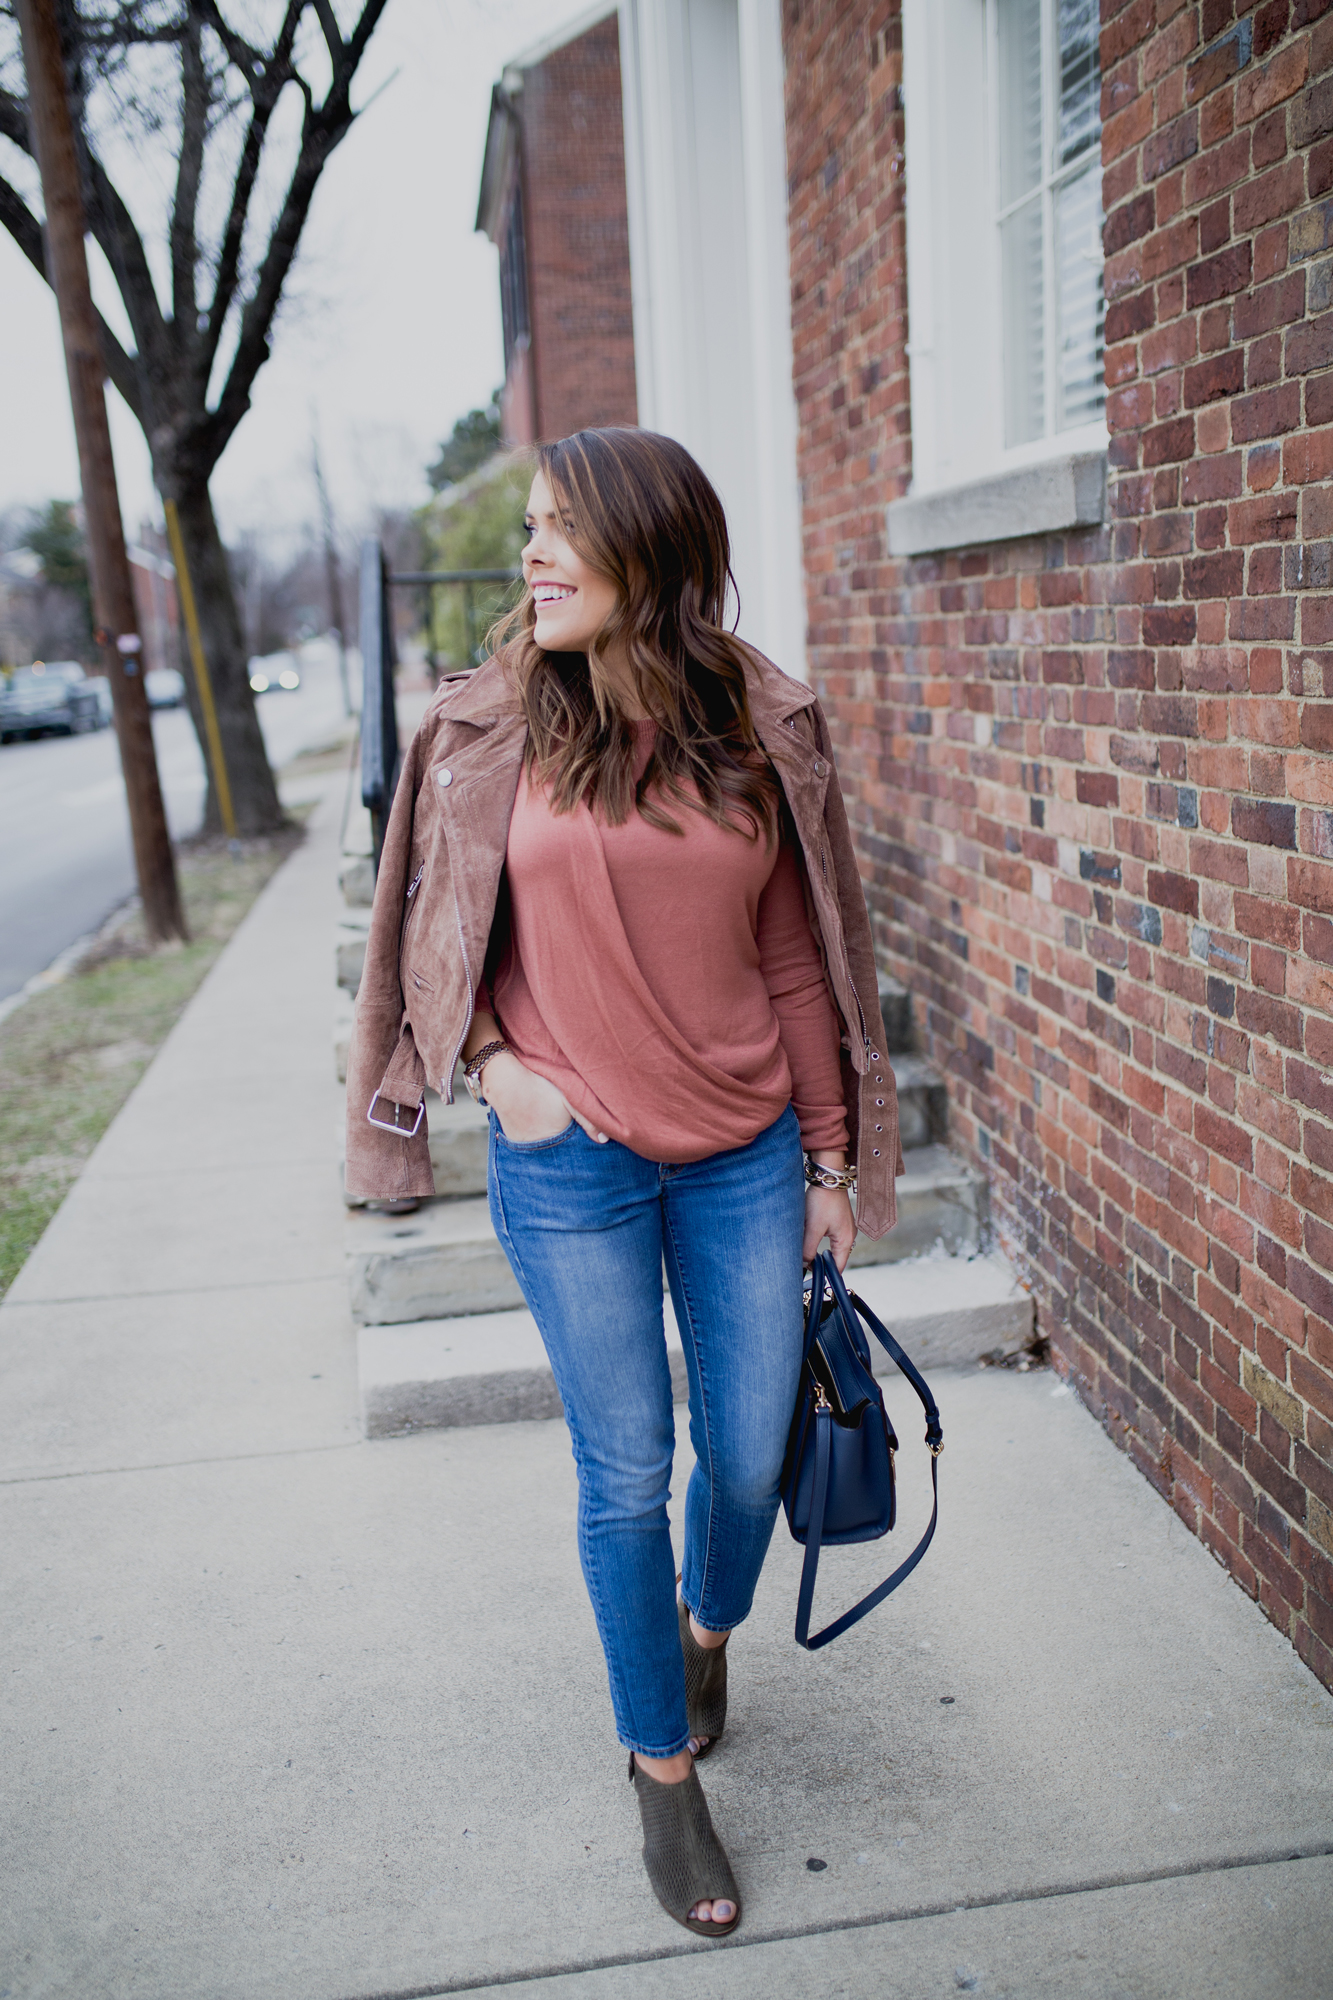 Spring Outfit Inspiration ft. Blank NYC Suede Jacket, Gap Jeans, ASOS Sweater, Henri Bendel Rivington Tote